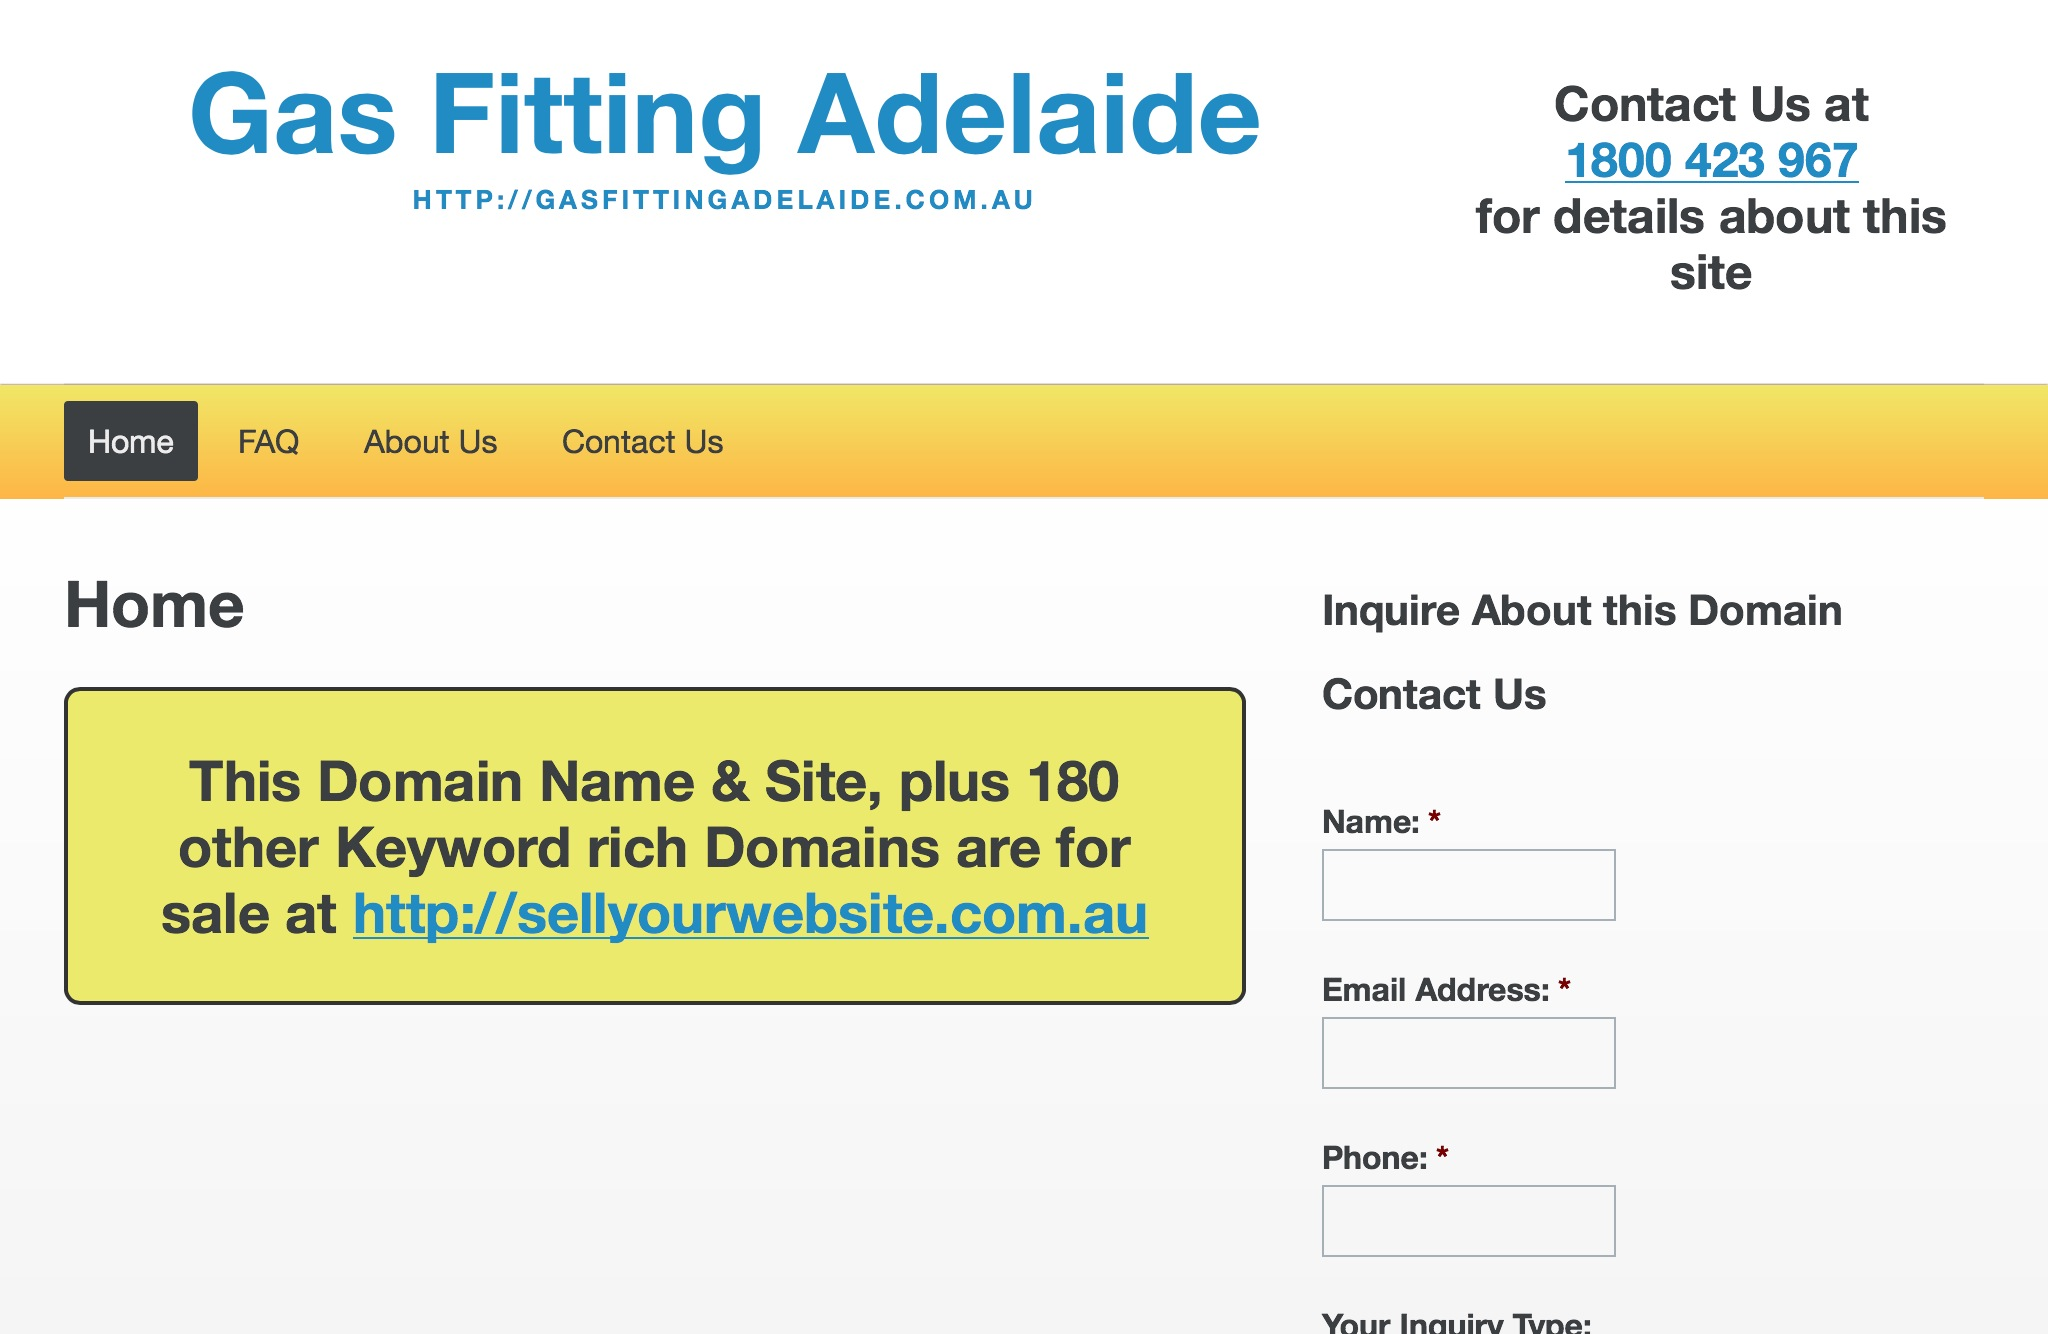 Gas Fitting Adelaide